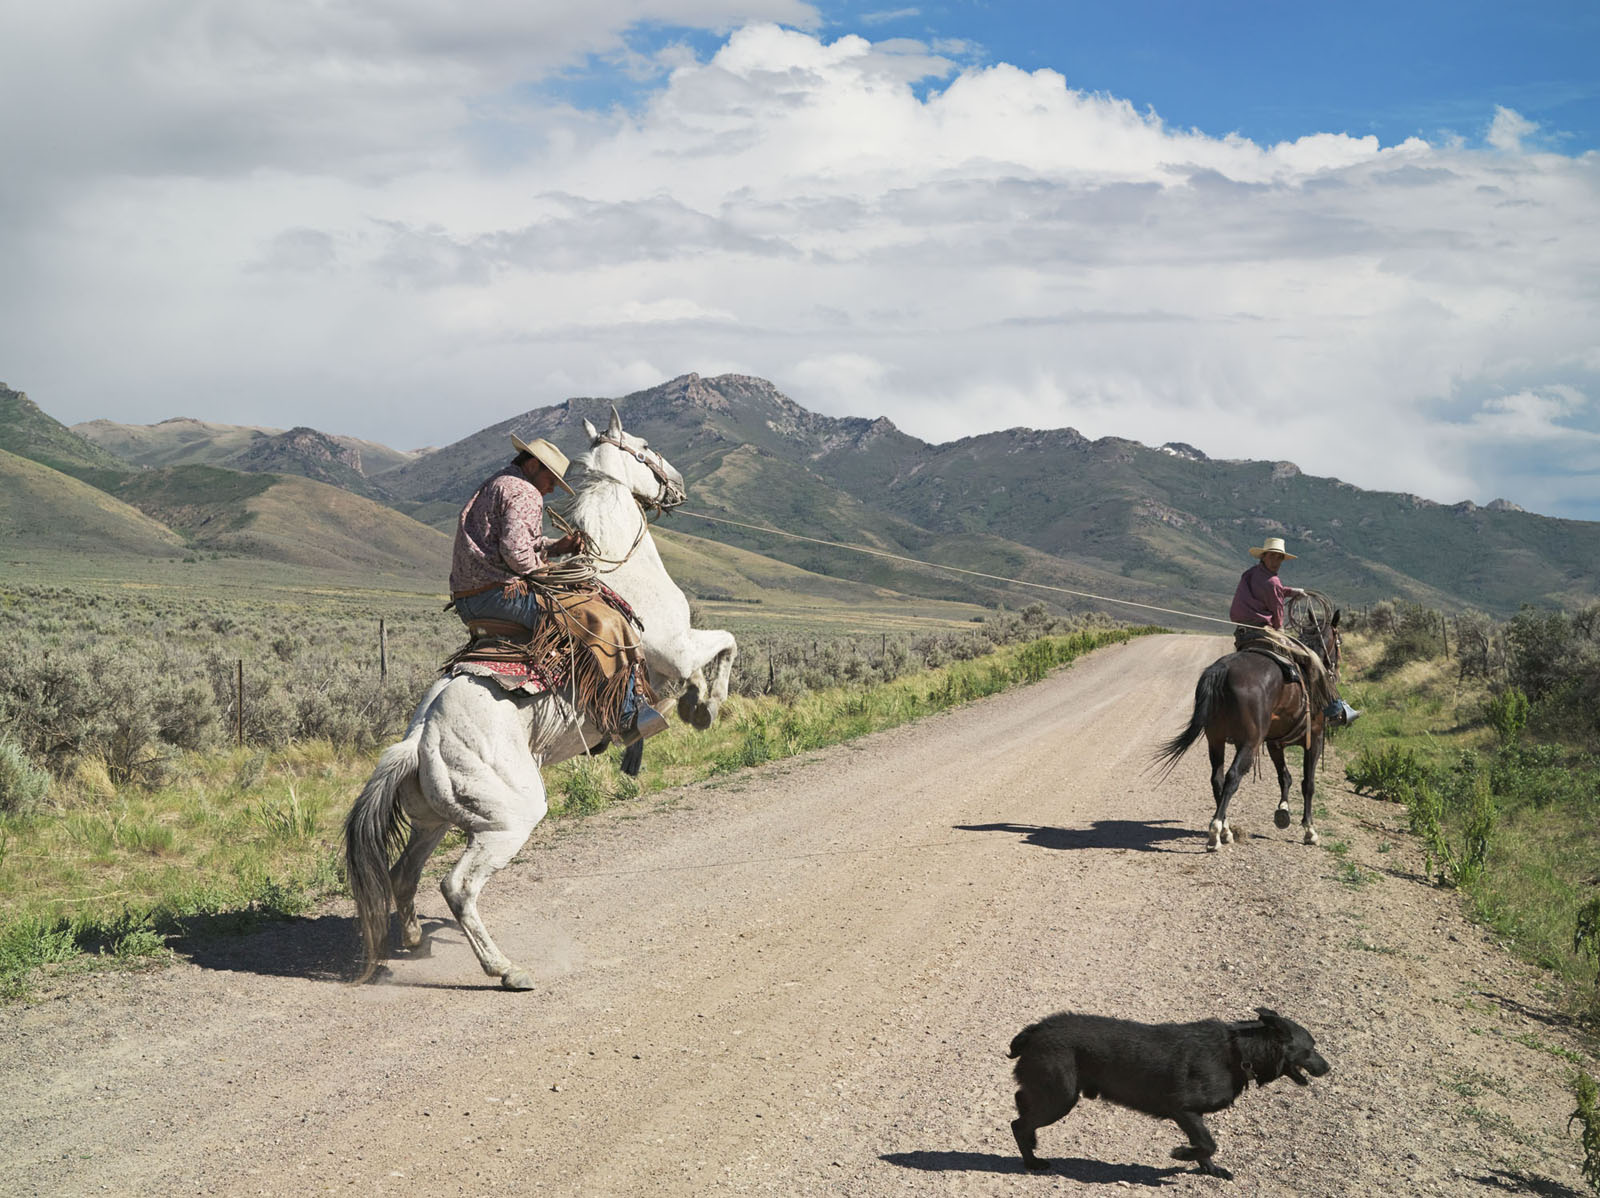 Casey and Rowdy Horse Training, 71 Ranch, Deeth, Nevada, Lucas Foglia, 2012